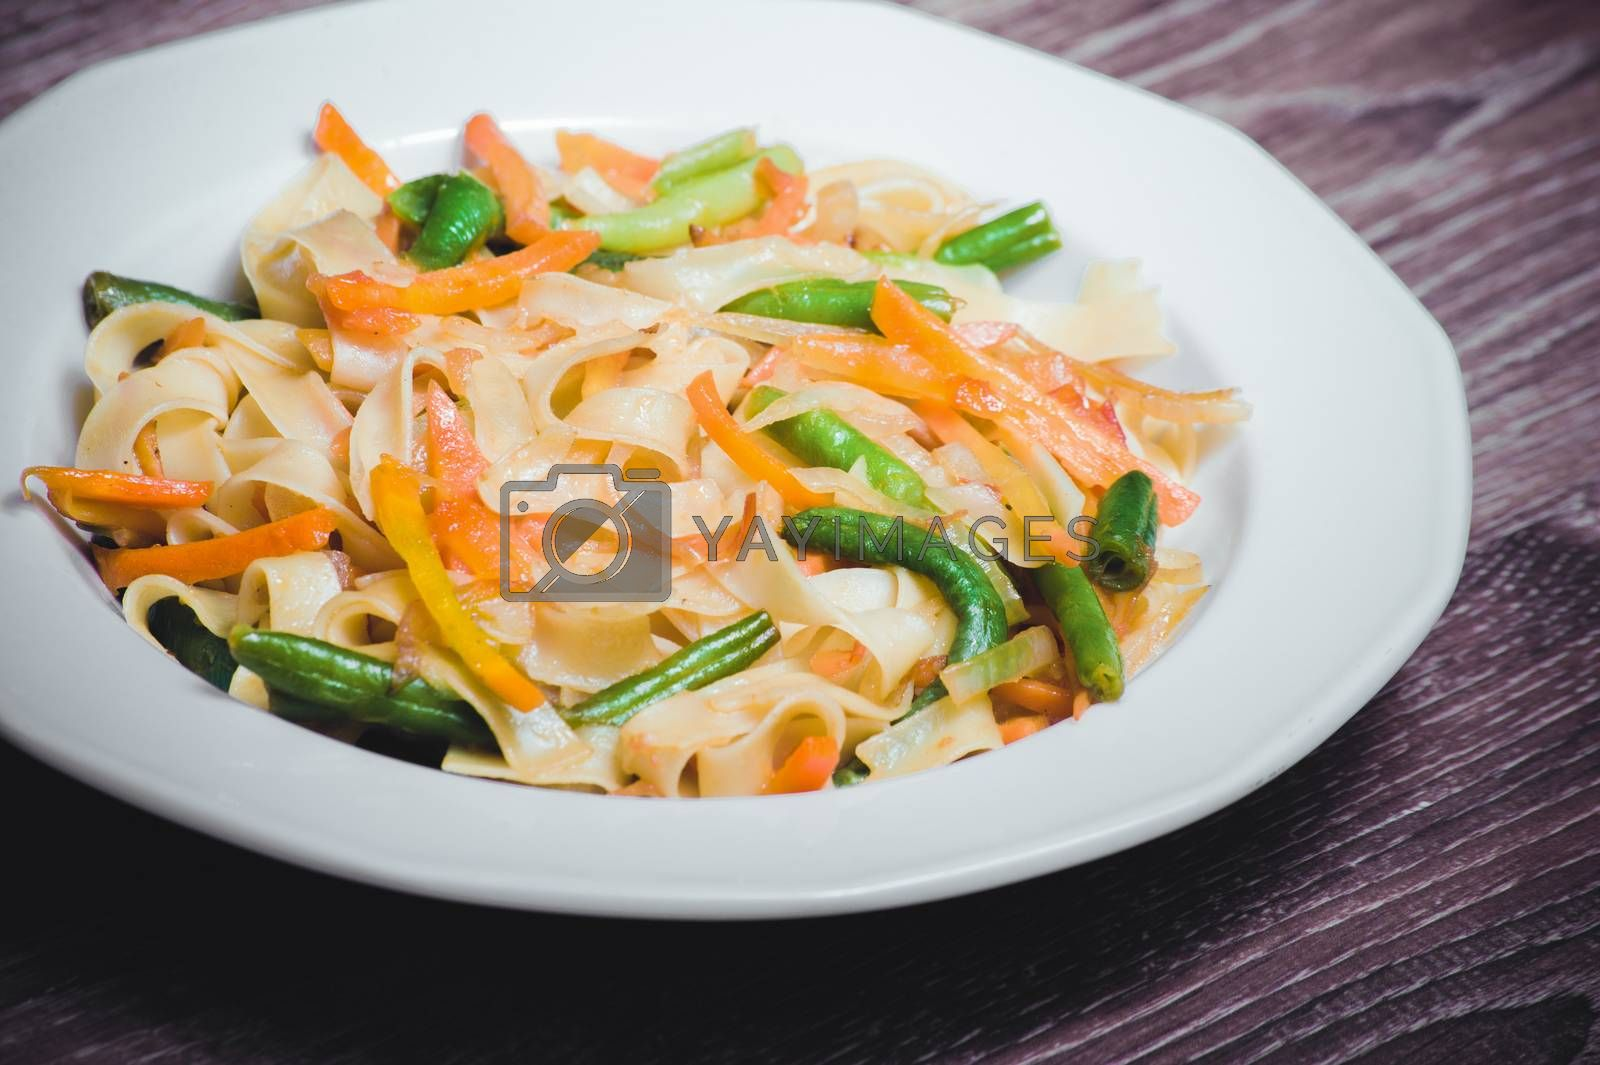 vegetarian pasta with carrot, zucchini on white plate